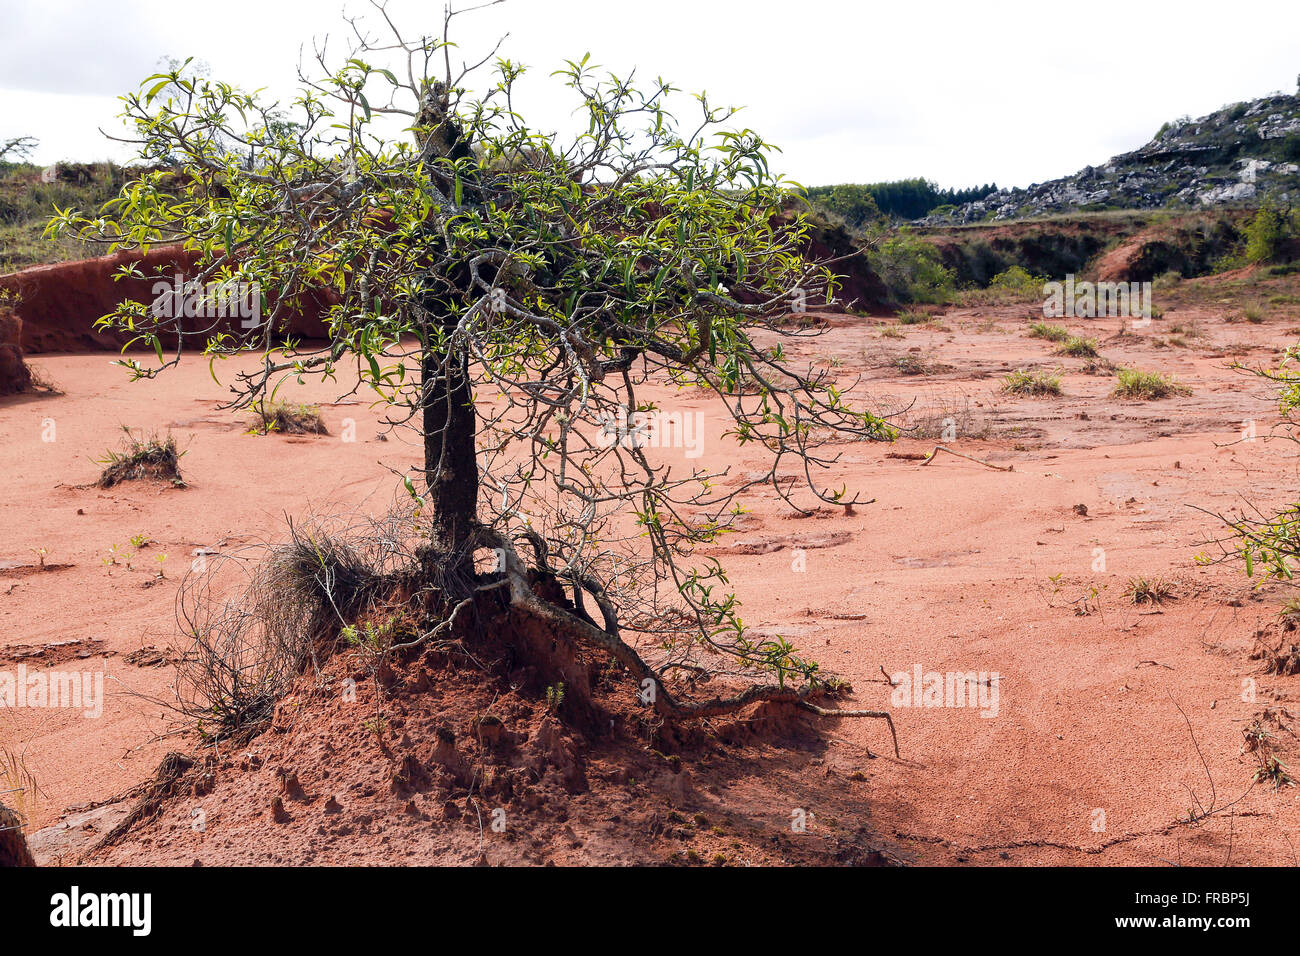 Example of the retention of the soil by the roots of plants in degraded area - Stock Image